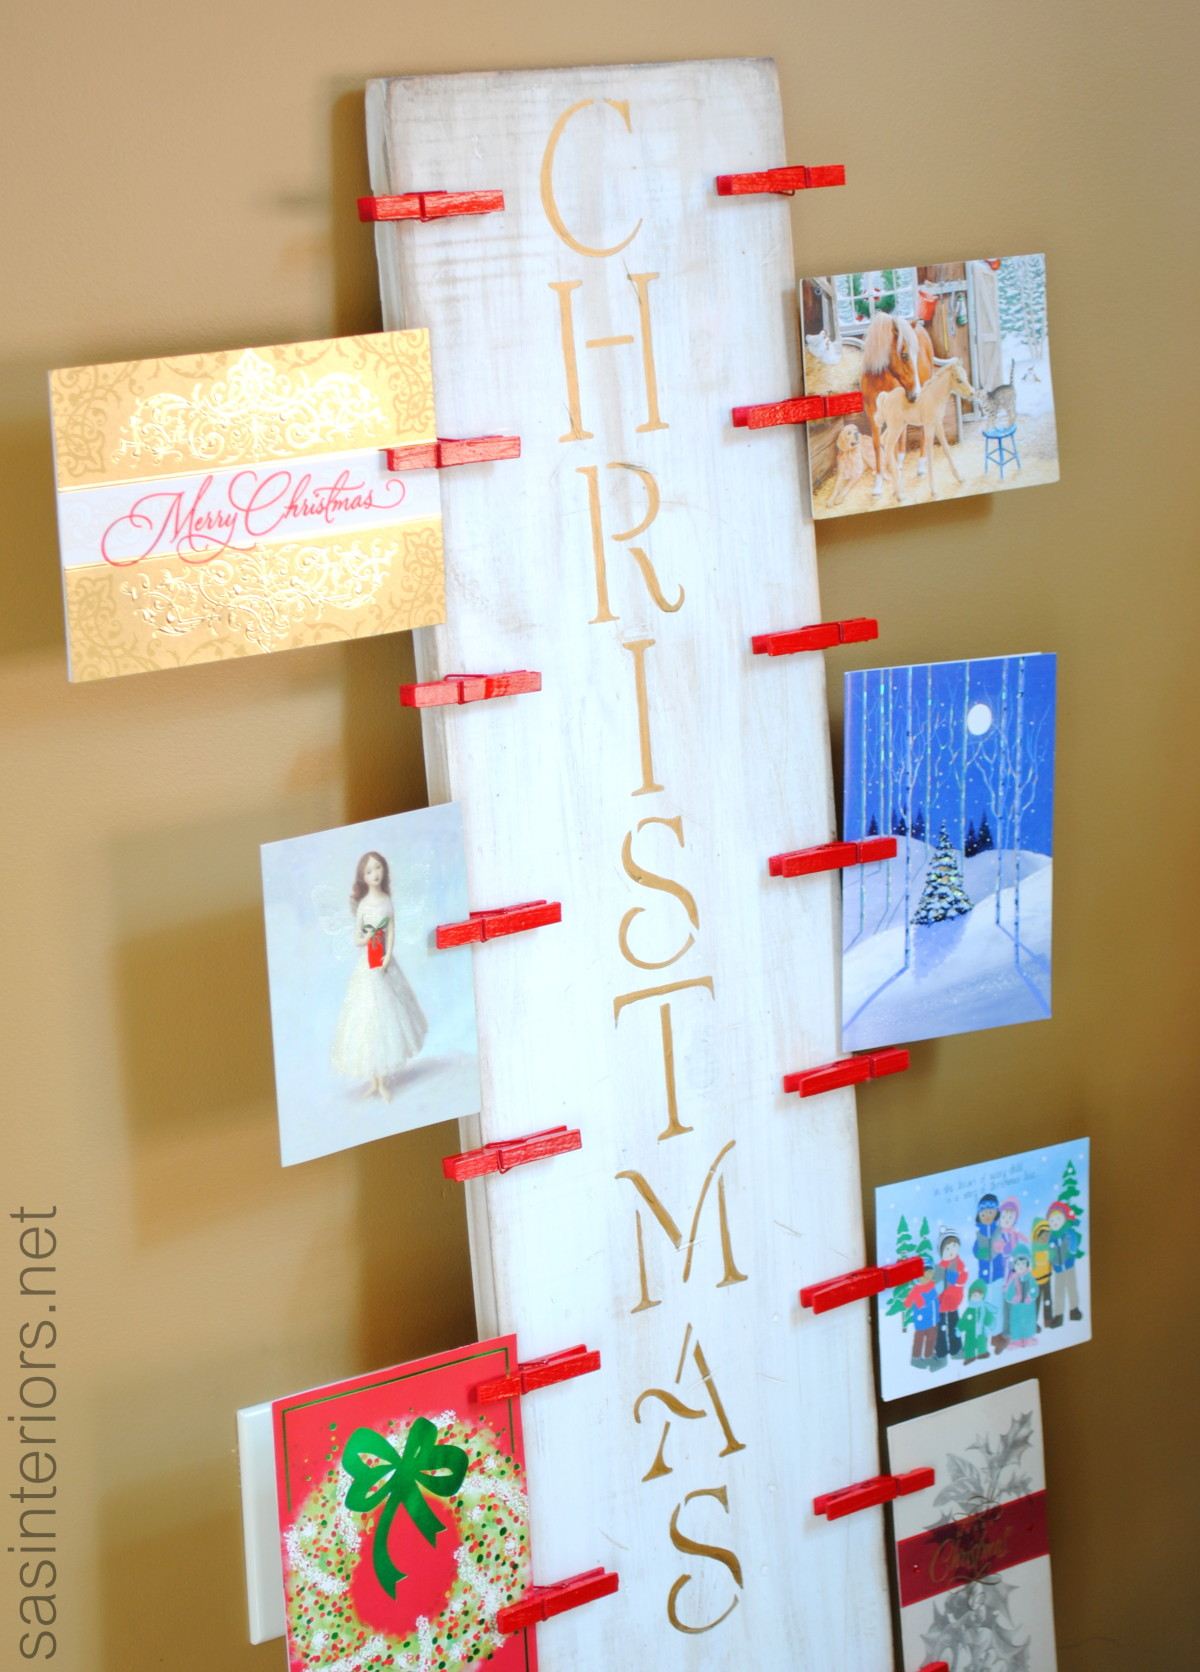 christmas card holder a lowes creative idea lowescreator jenna burger. Black Bedroom Furniture Sets. Home Design Ideas